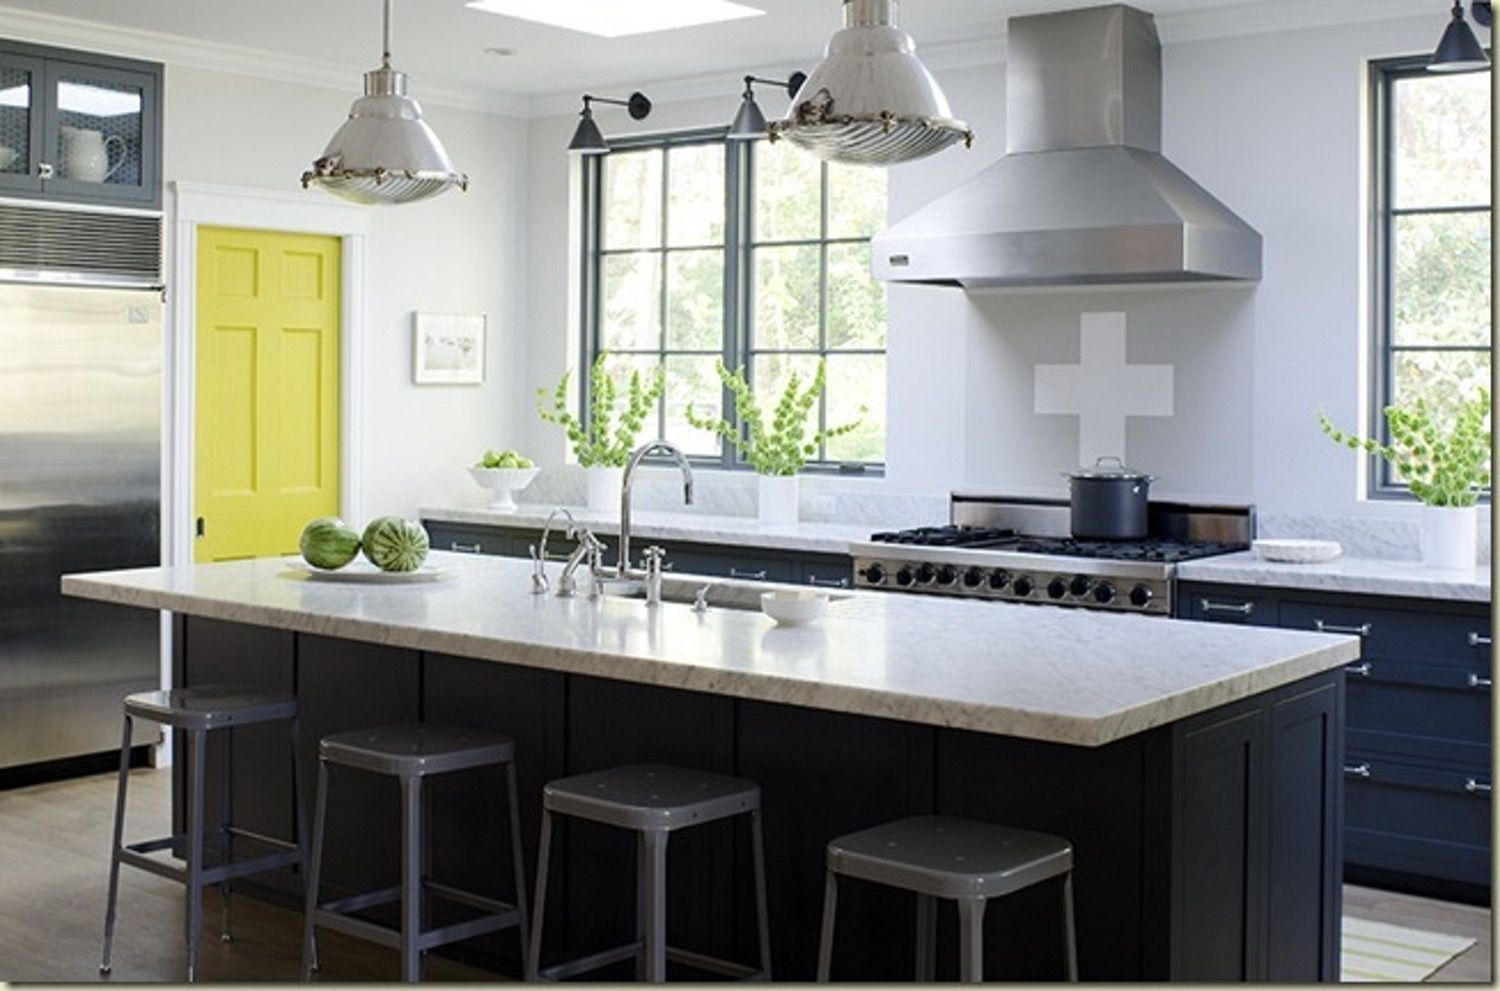 10 Kitchens Without Upper Cabinets Kitchens Without Upper Cabinets Kitchen Renovation Popular Kitchen Paint Colors